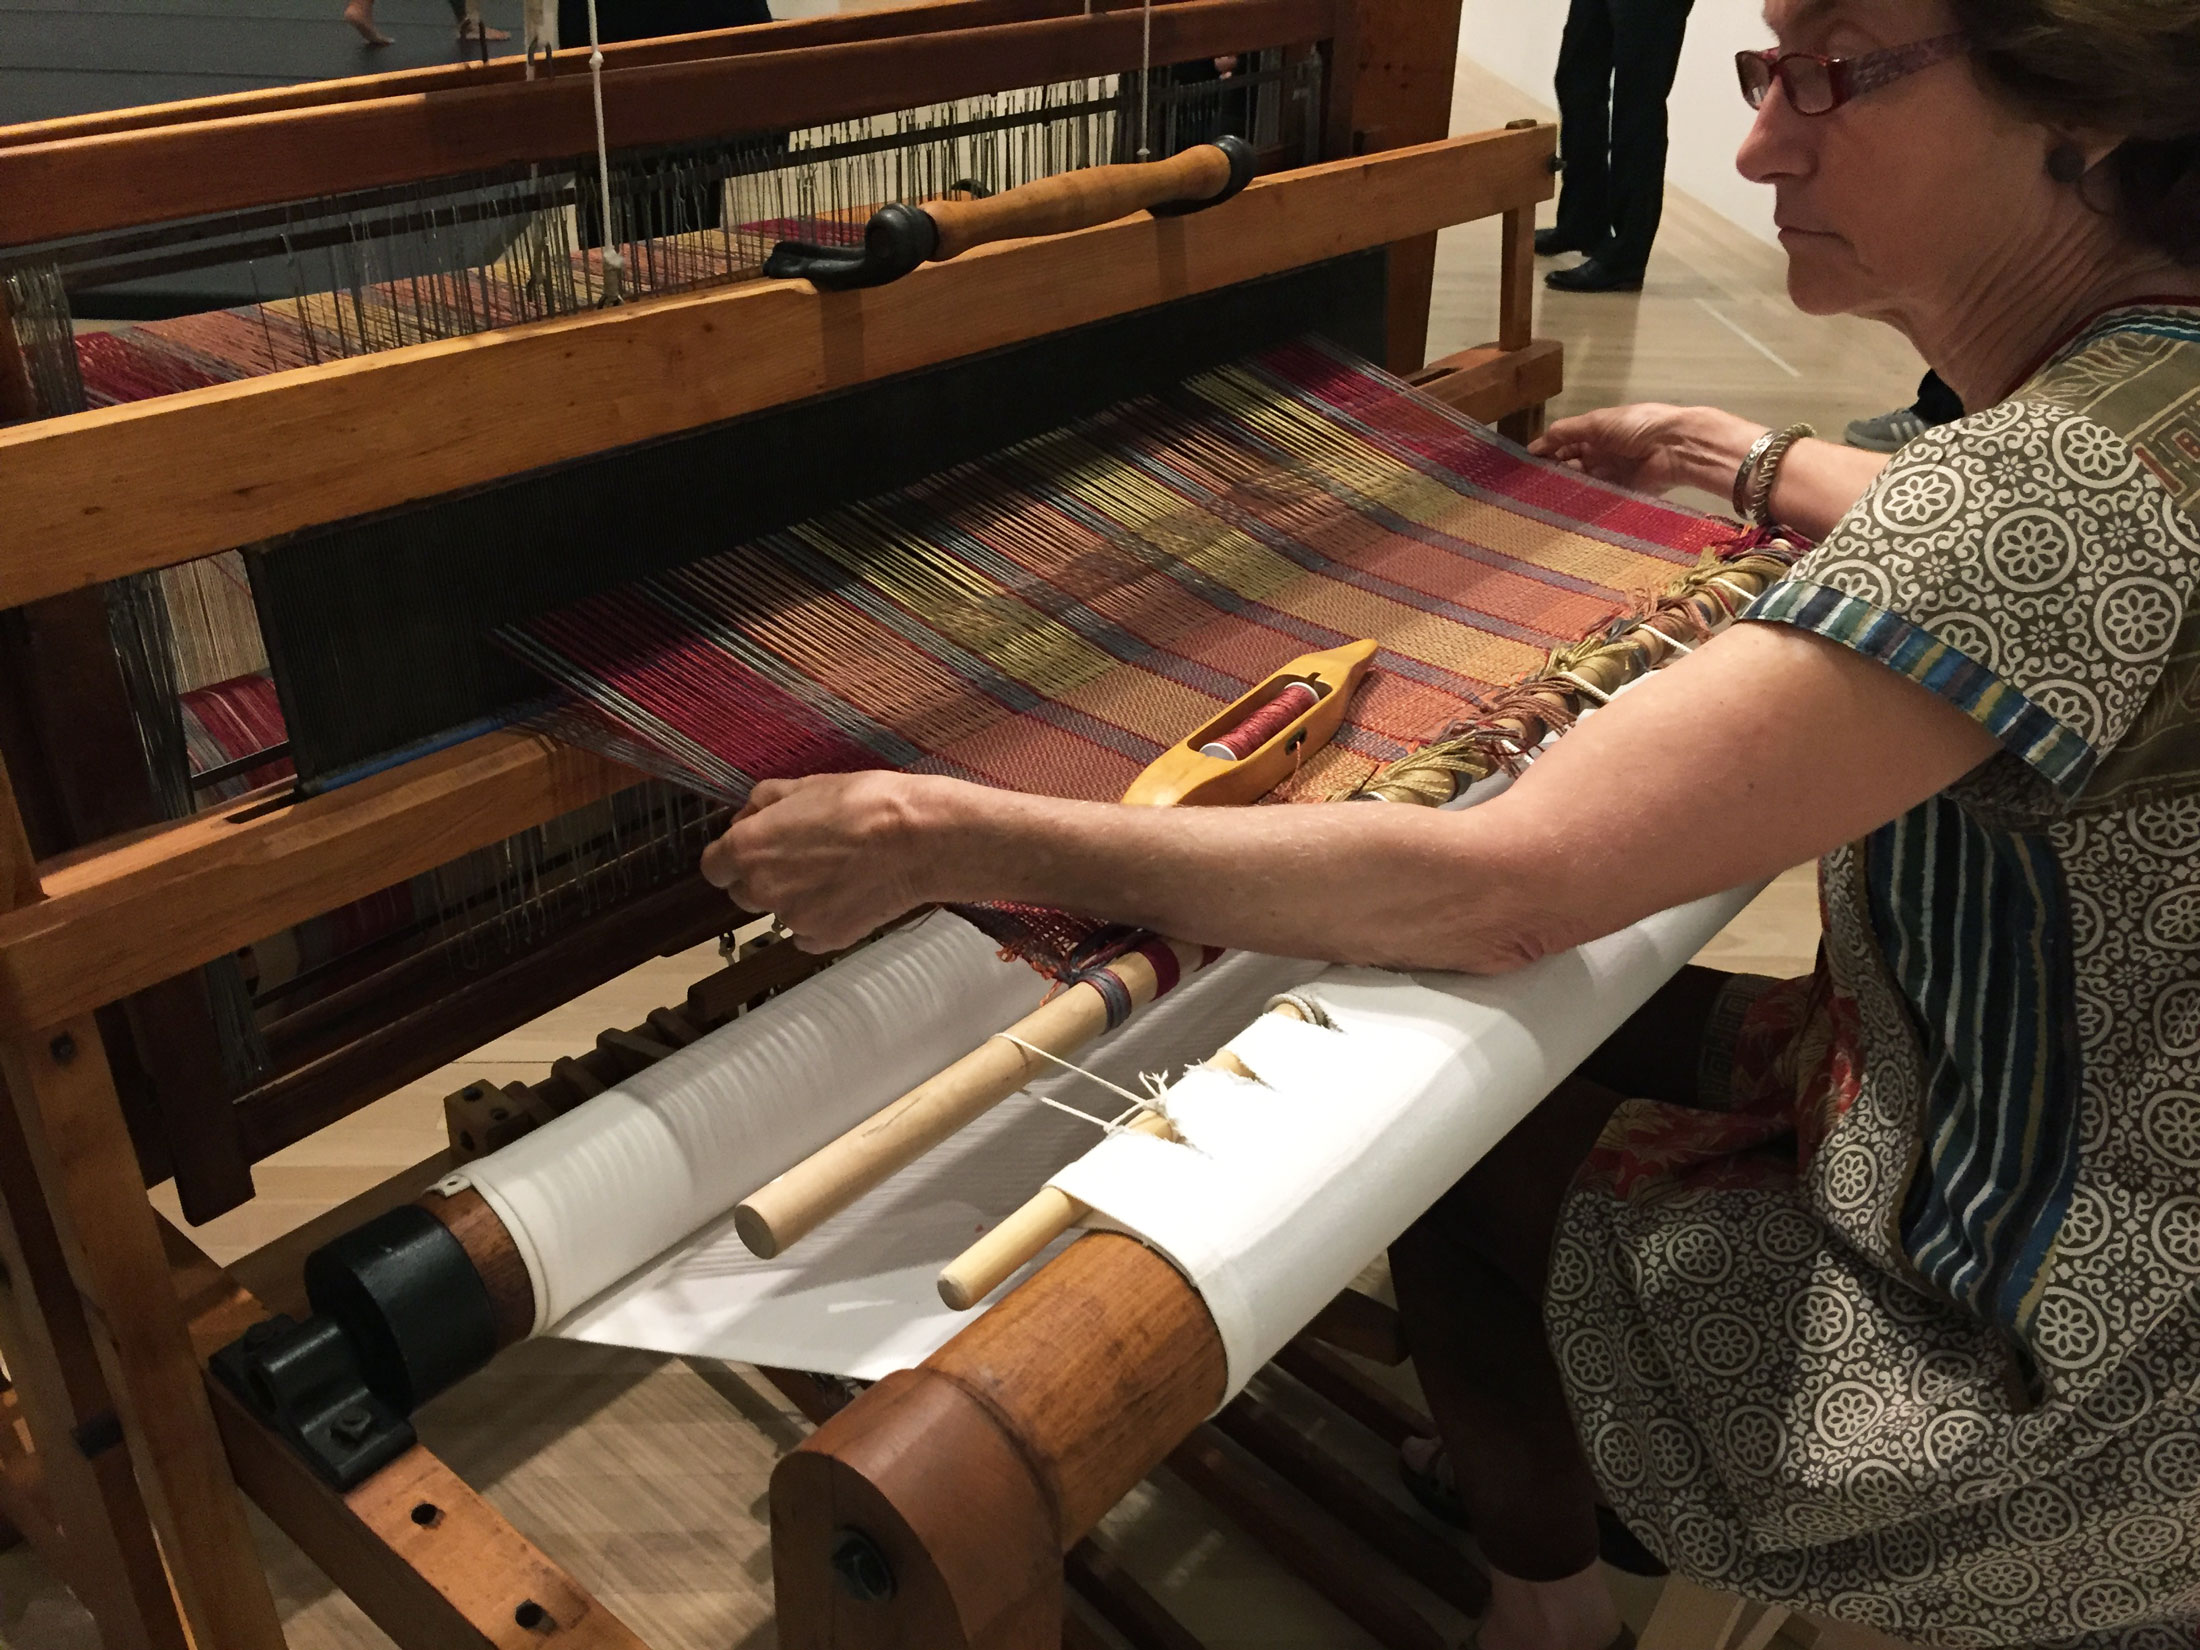 Professional weaver Cameron Taylor-Brown demonstrated the process of loom weaving using Anni Albers's Shuttle-Craft Practical Loom